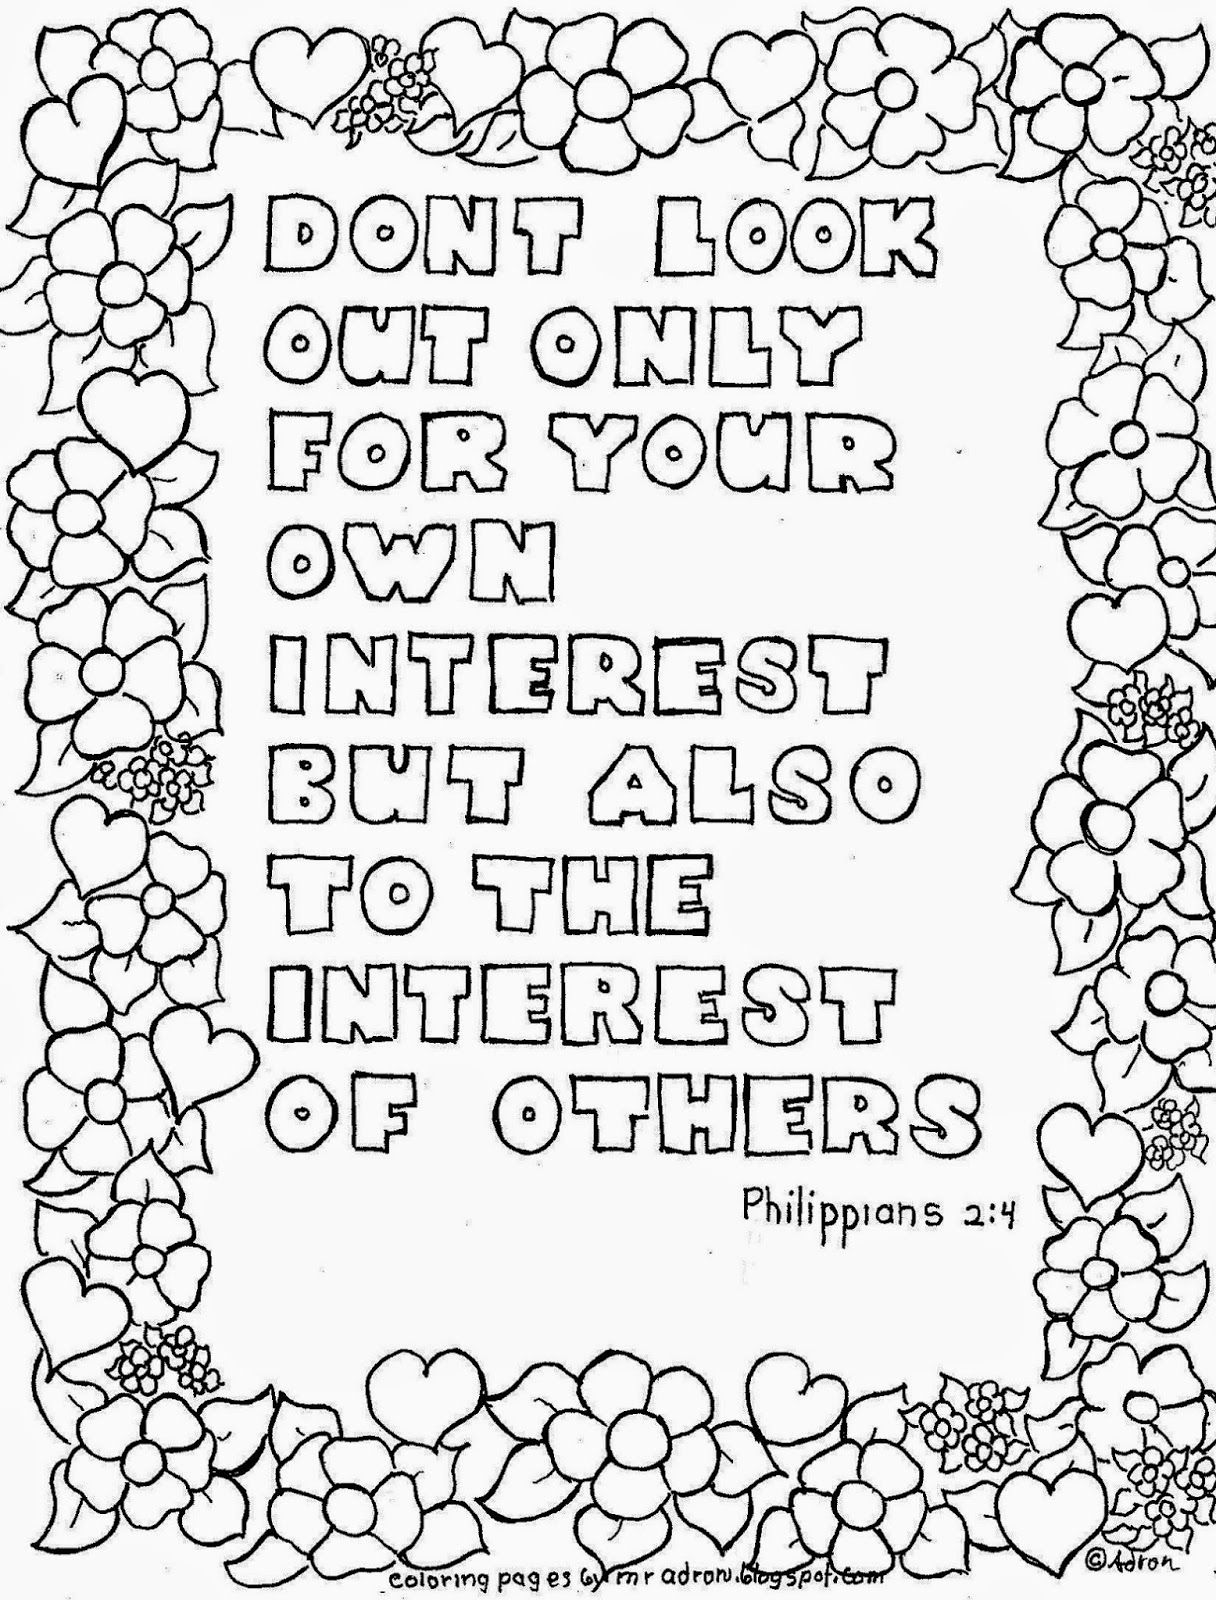 Coloring pages with bible verses - A Free Coloring Page For Kids See More At My Blog Http